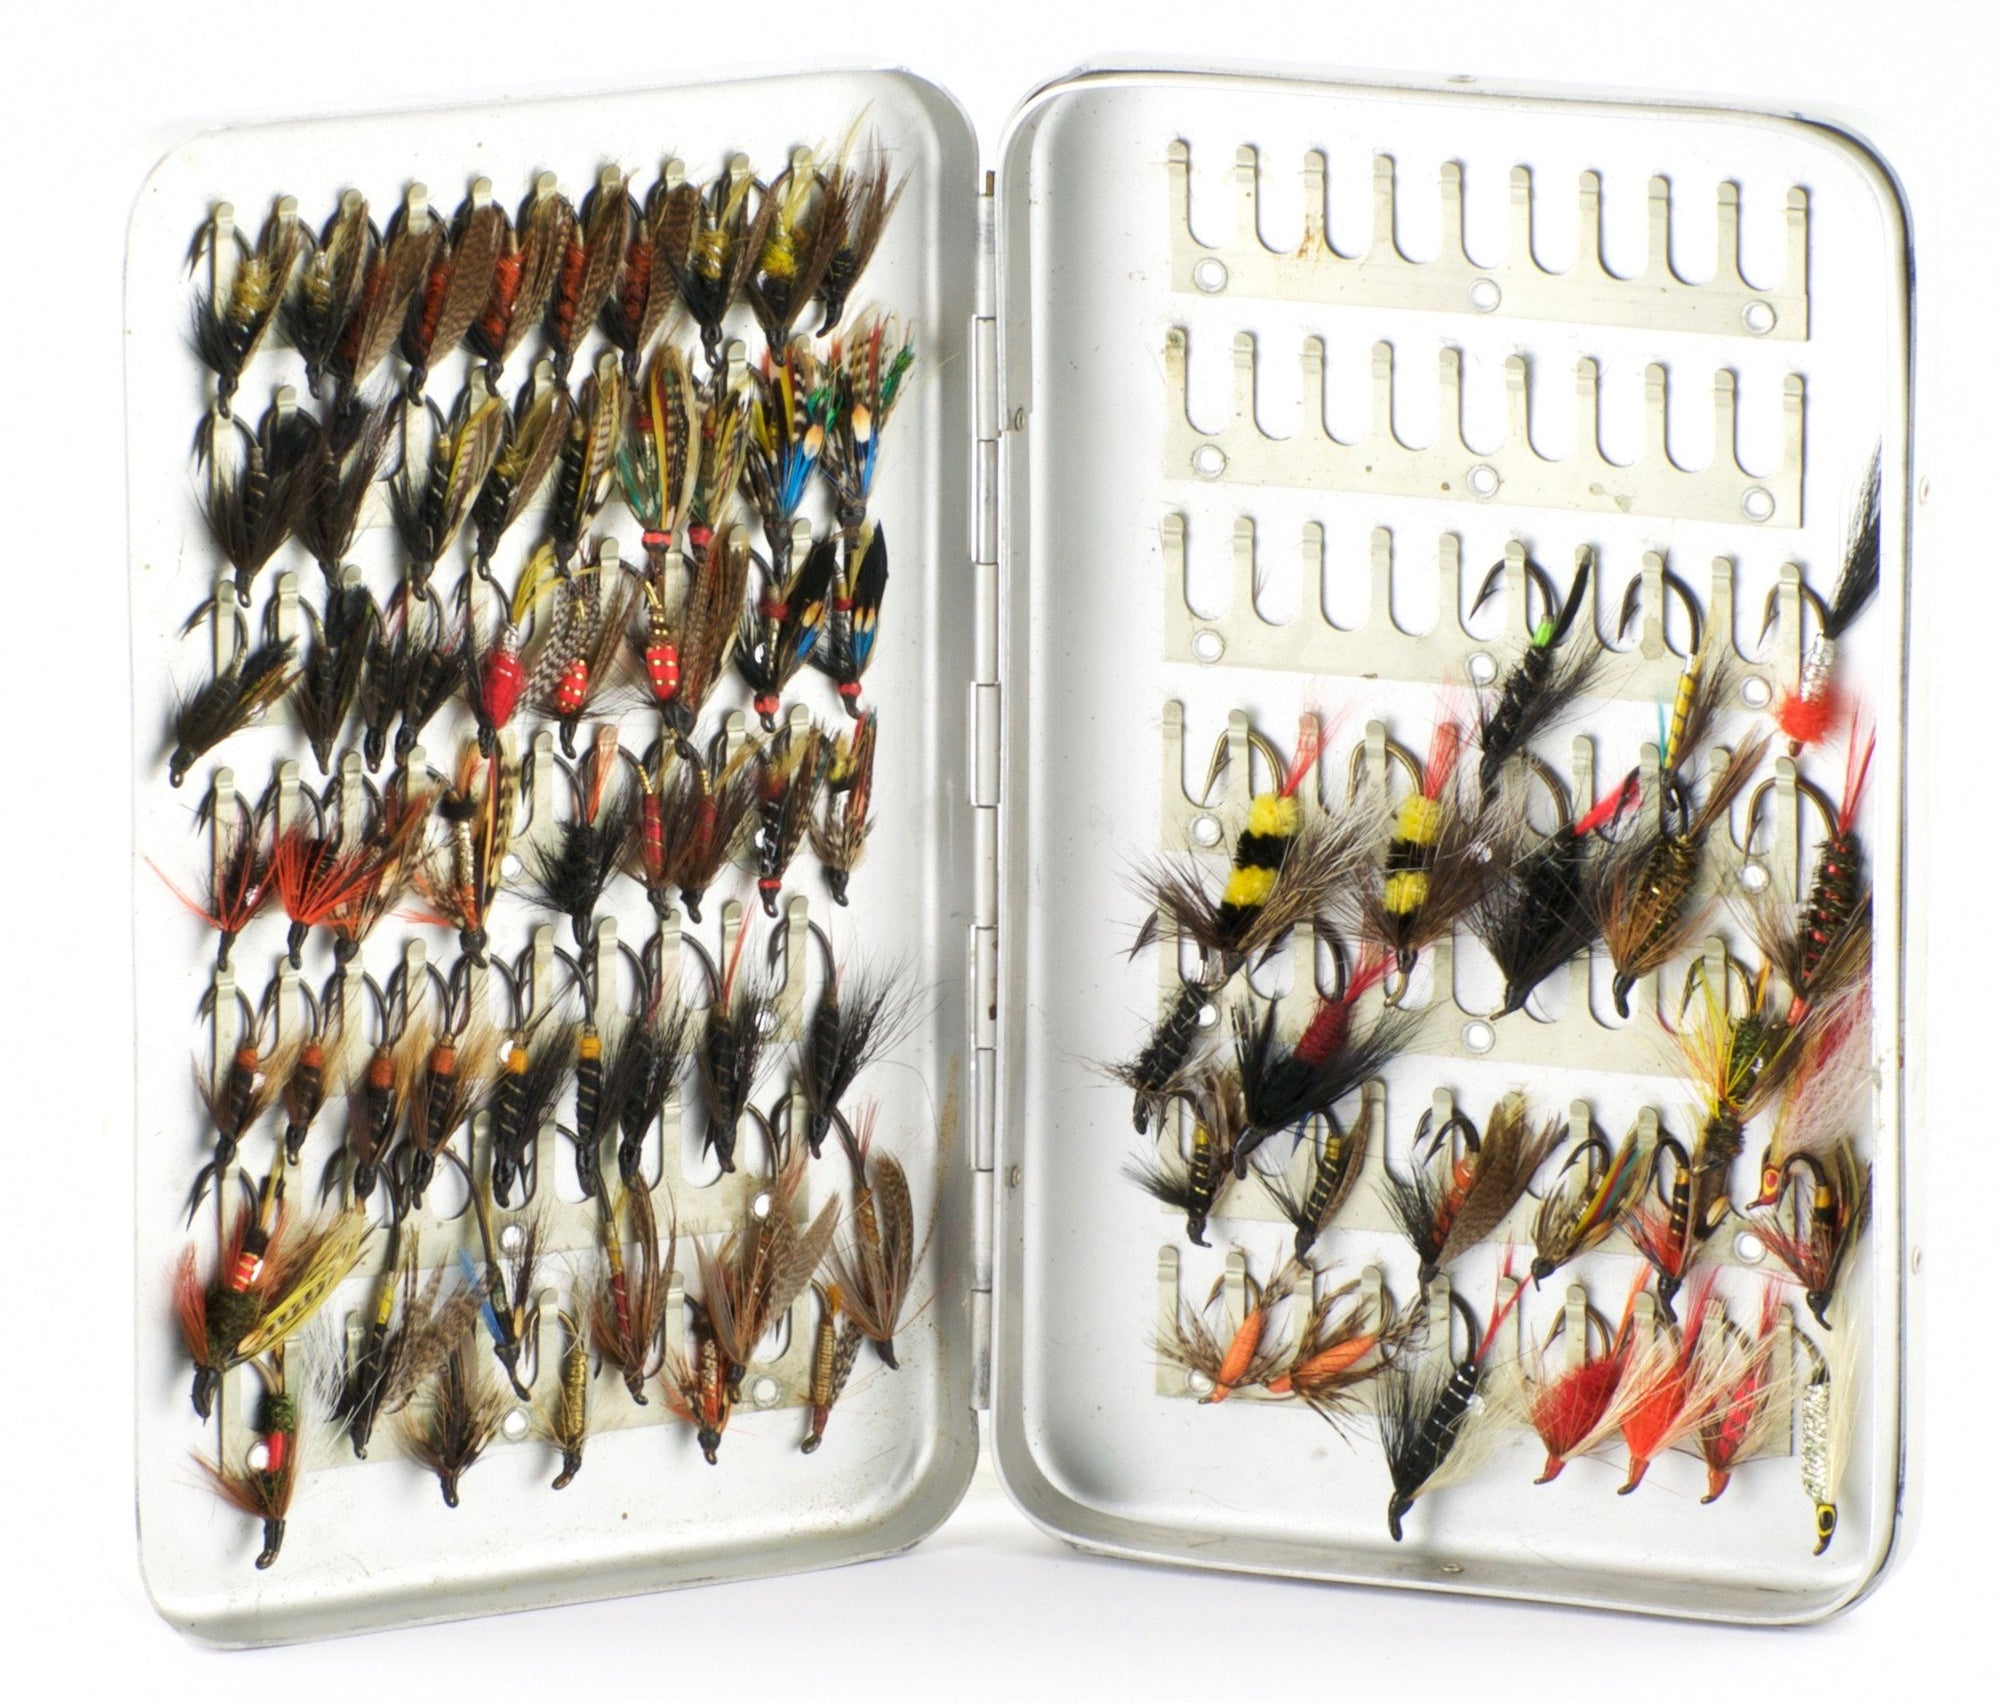 Andre Puyans' Personal Fly Box